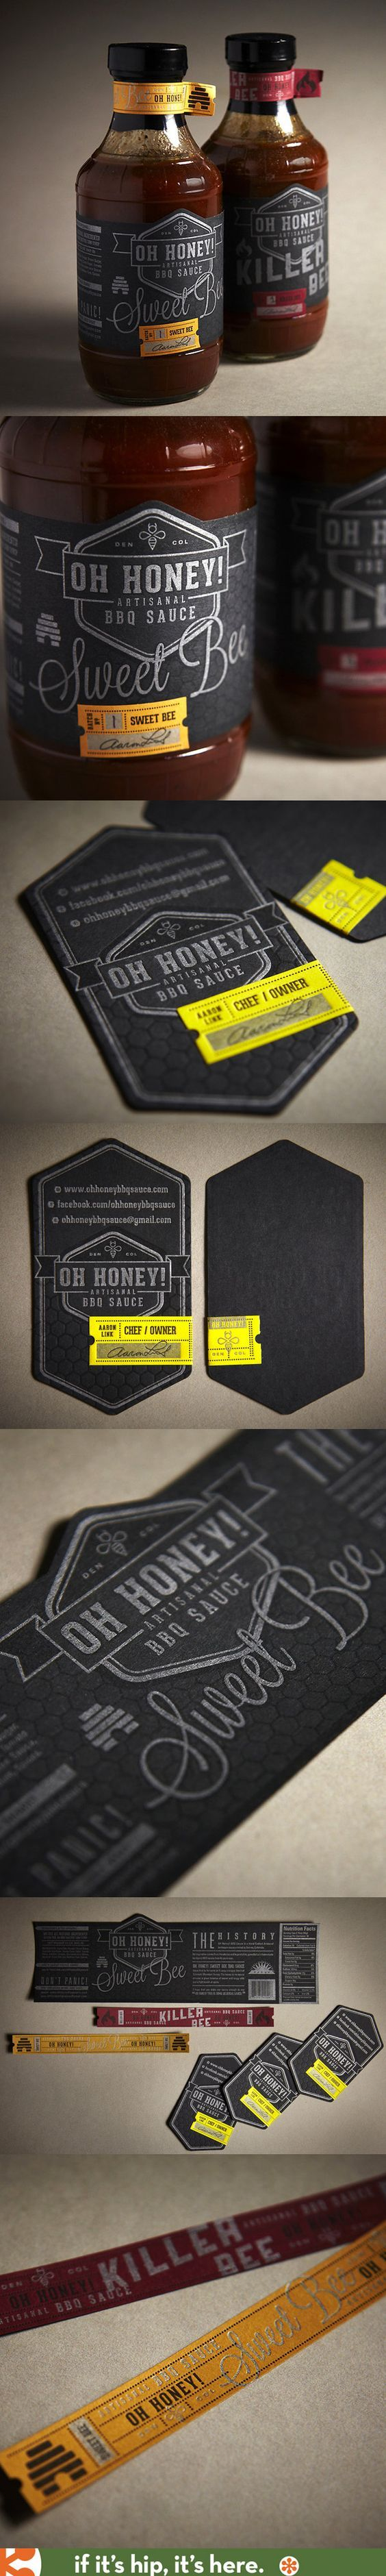 Beautiful typography, label and package design for Oh Honey BBQ Sauce by Roger Maynor of Public: